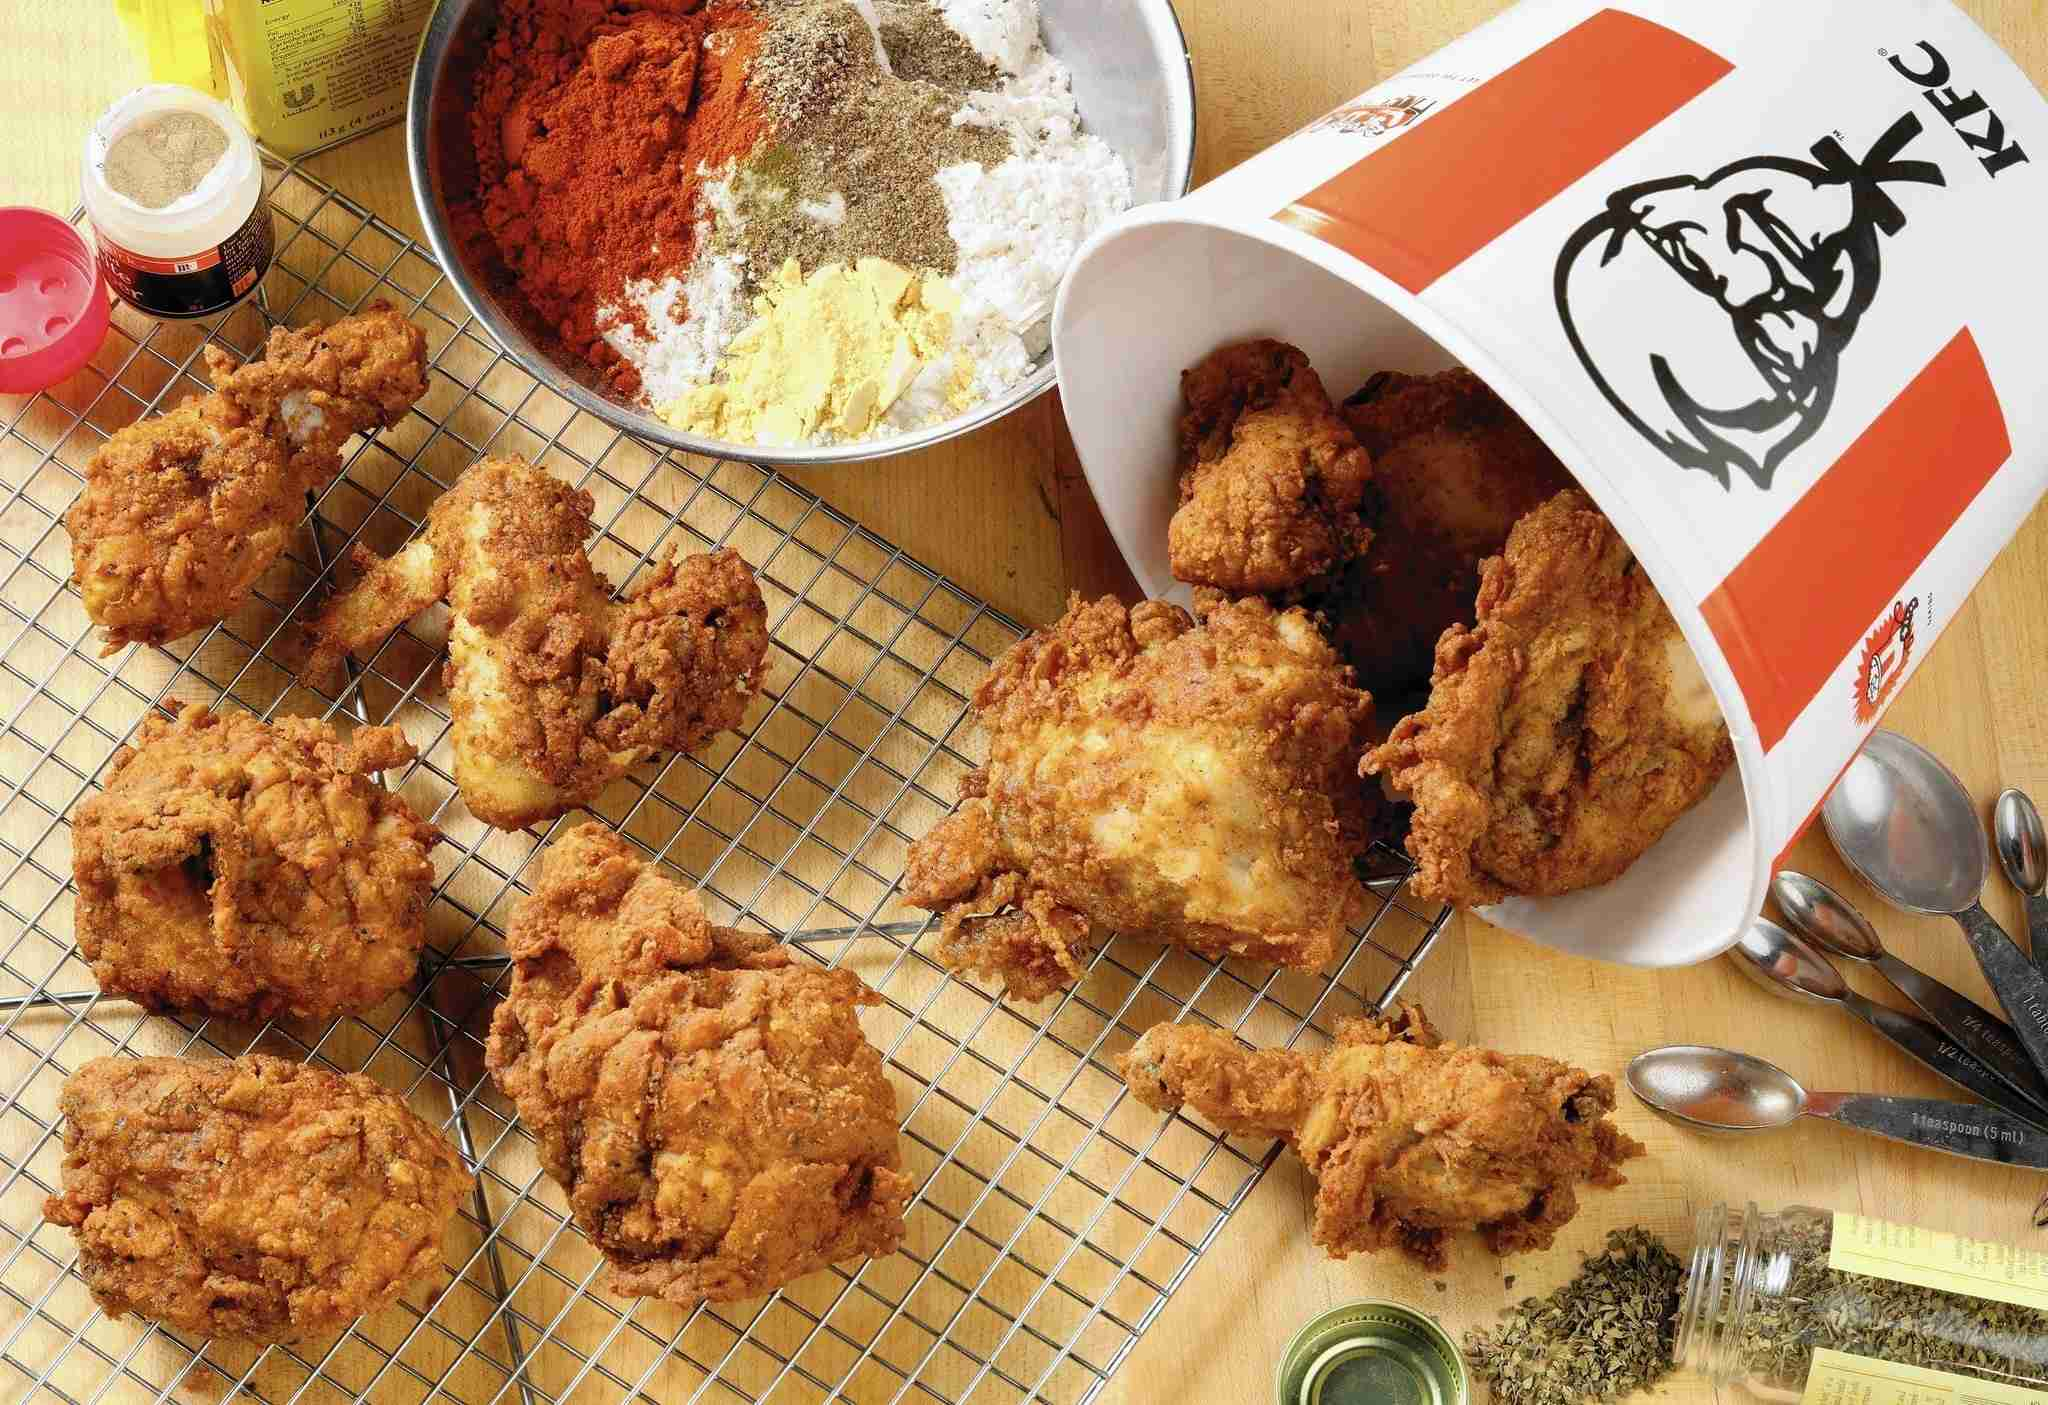 KFC recipe challenge: Tribune kitchen puts the 11 herbs and spices to the test - Chicago Tribune